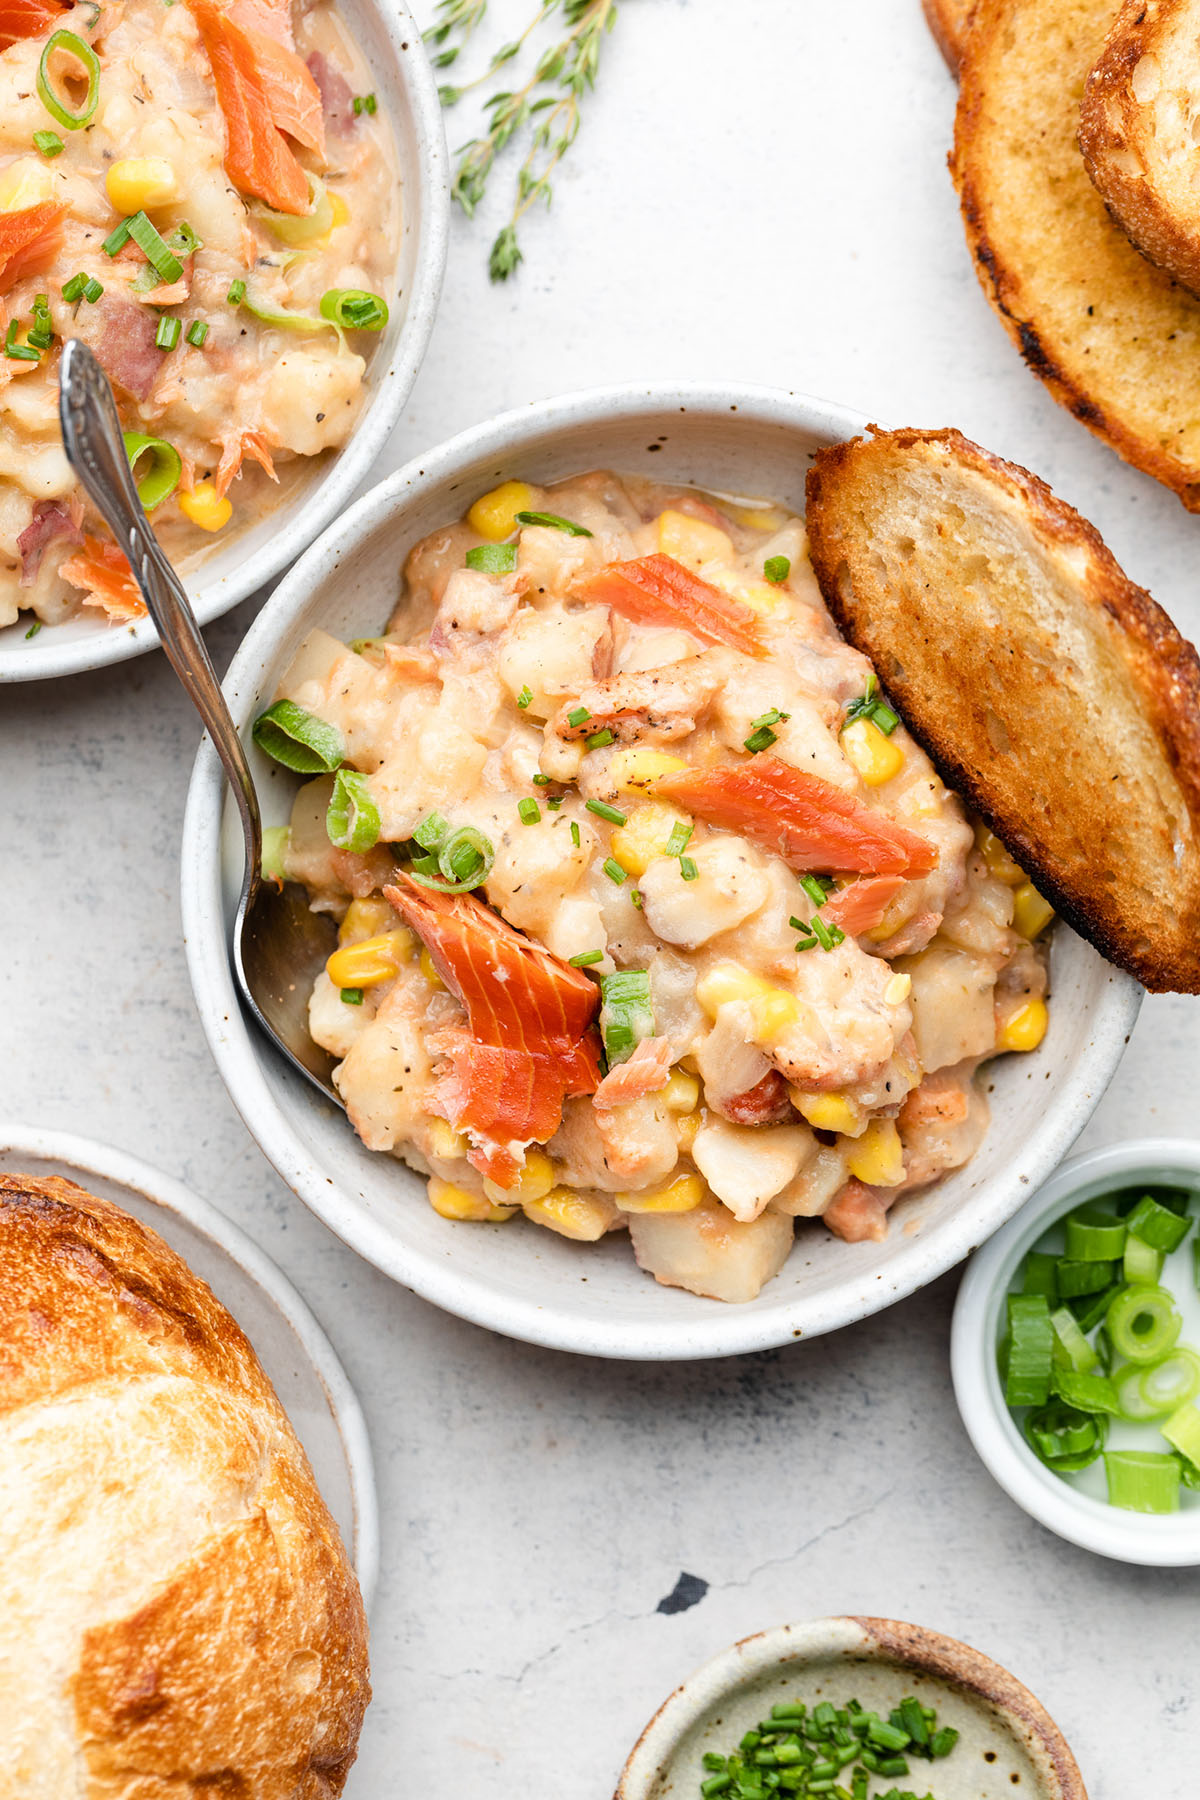 Chowder in a white bowl with a silver spoon and a piece of toasted bread.